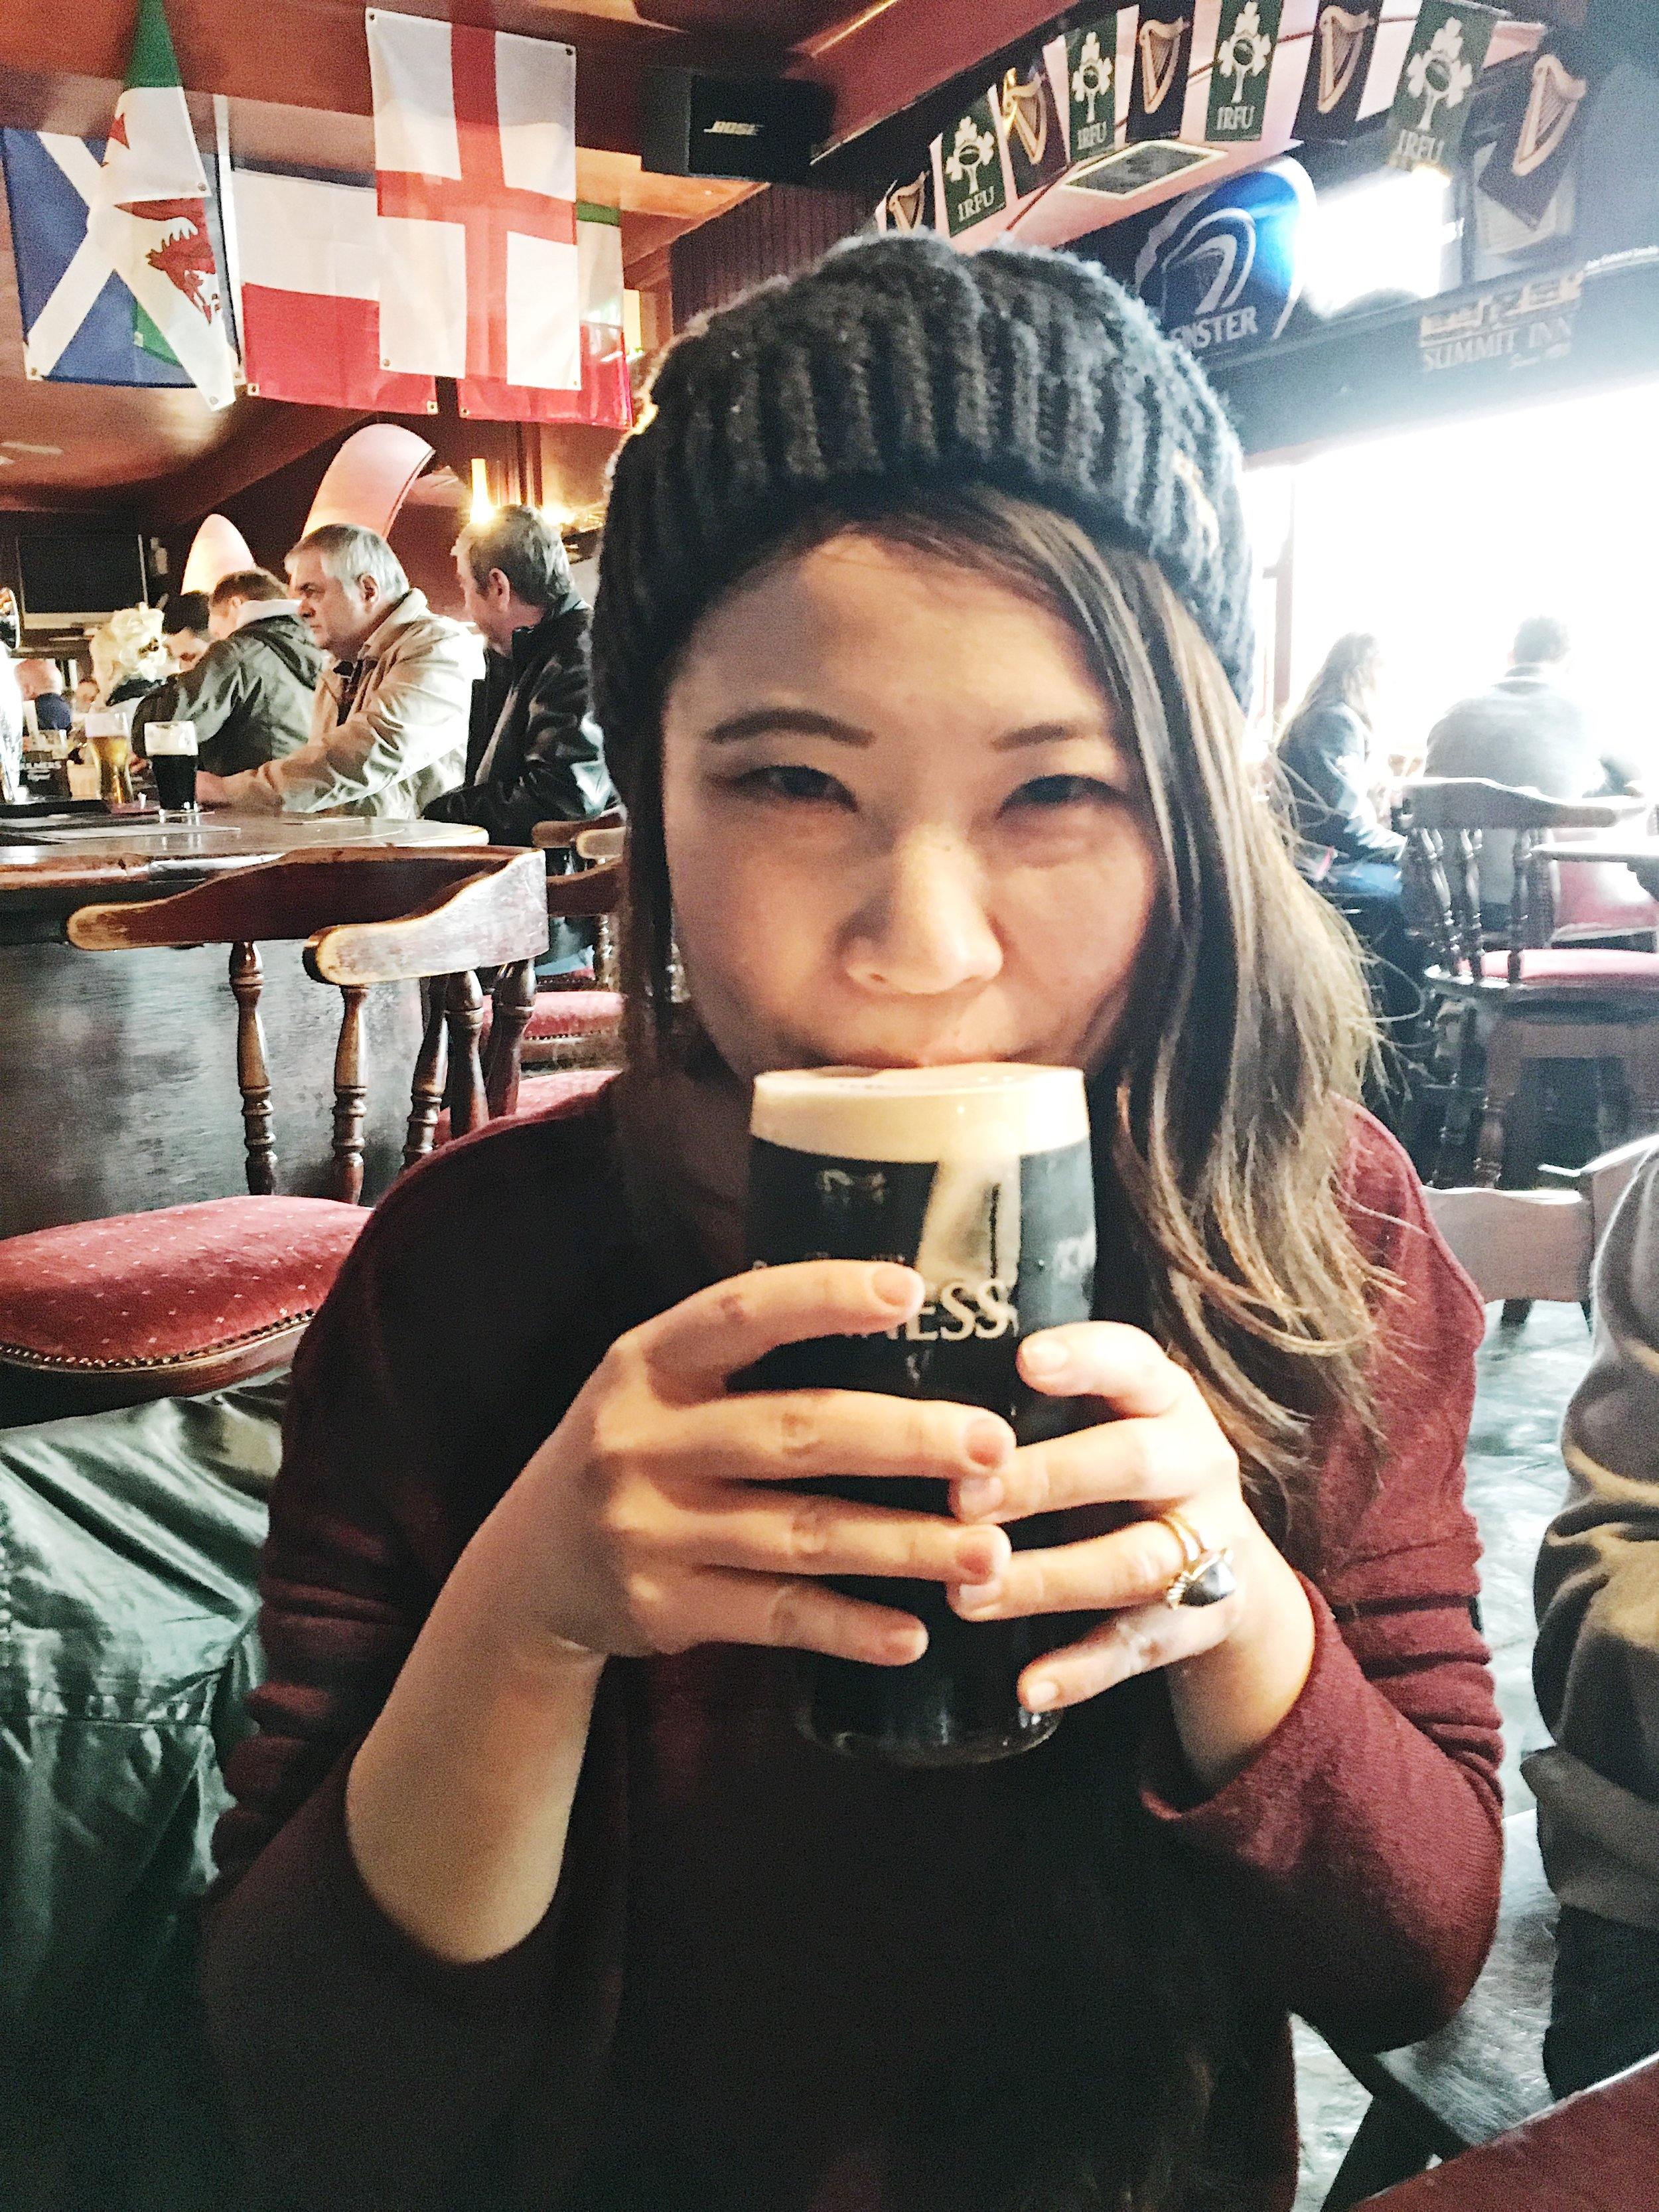 Of course you had to drink Guiness